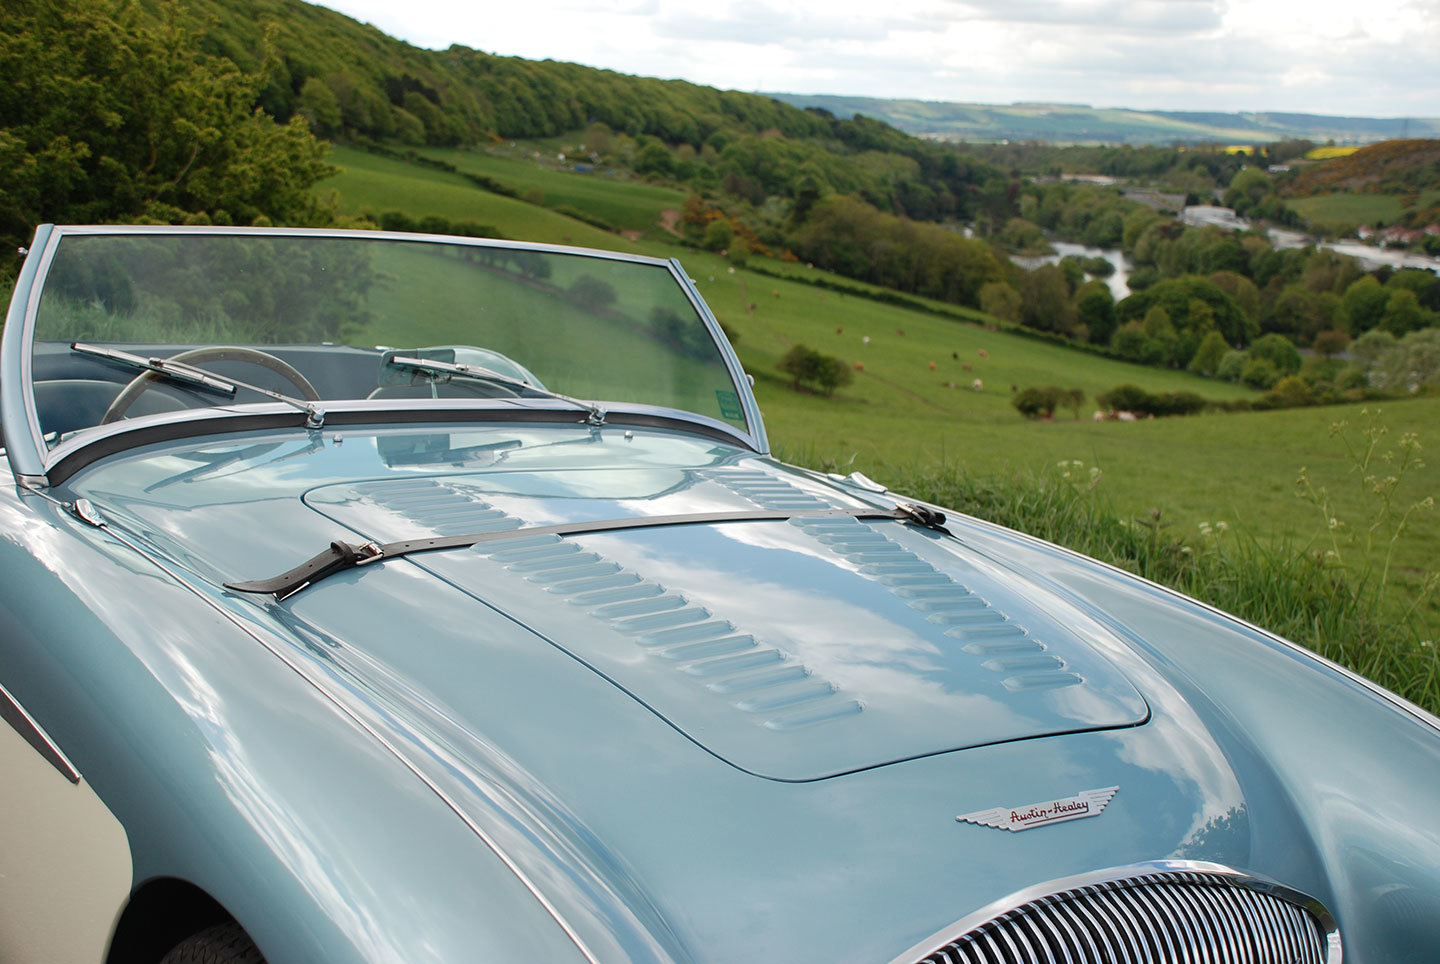 1955 Austin Healey 100/4 BN2 M Specification For Sale (picture 5 of 10)